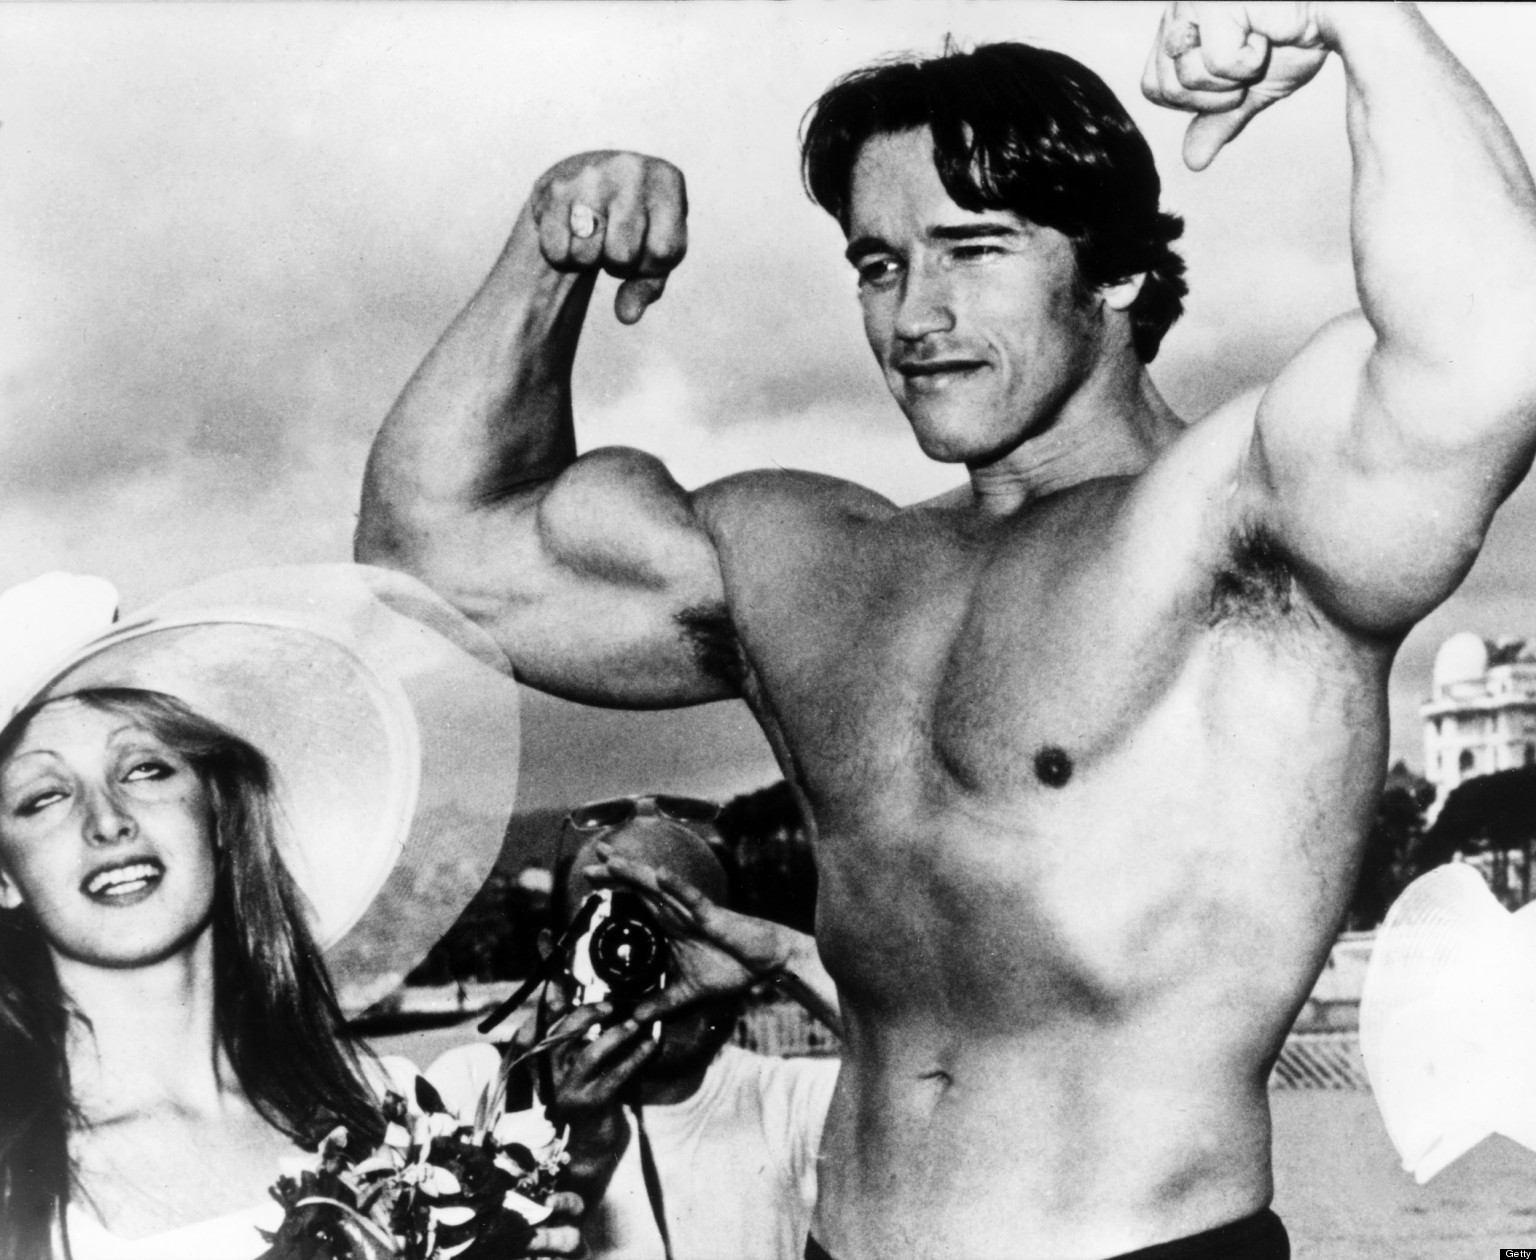 Arnold Schwarzenegger After Steroids Images & Pictures - Becuo.